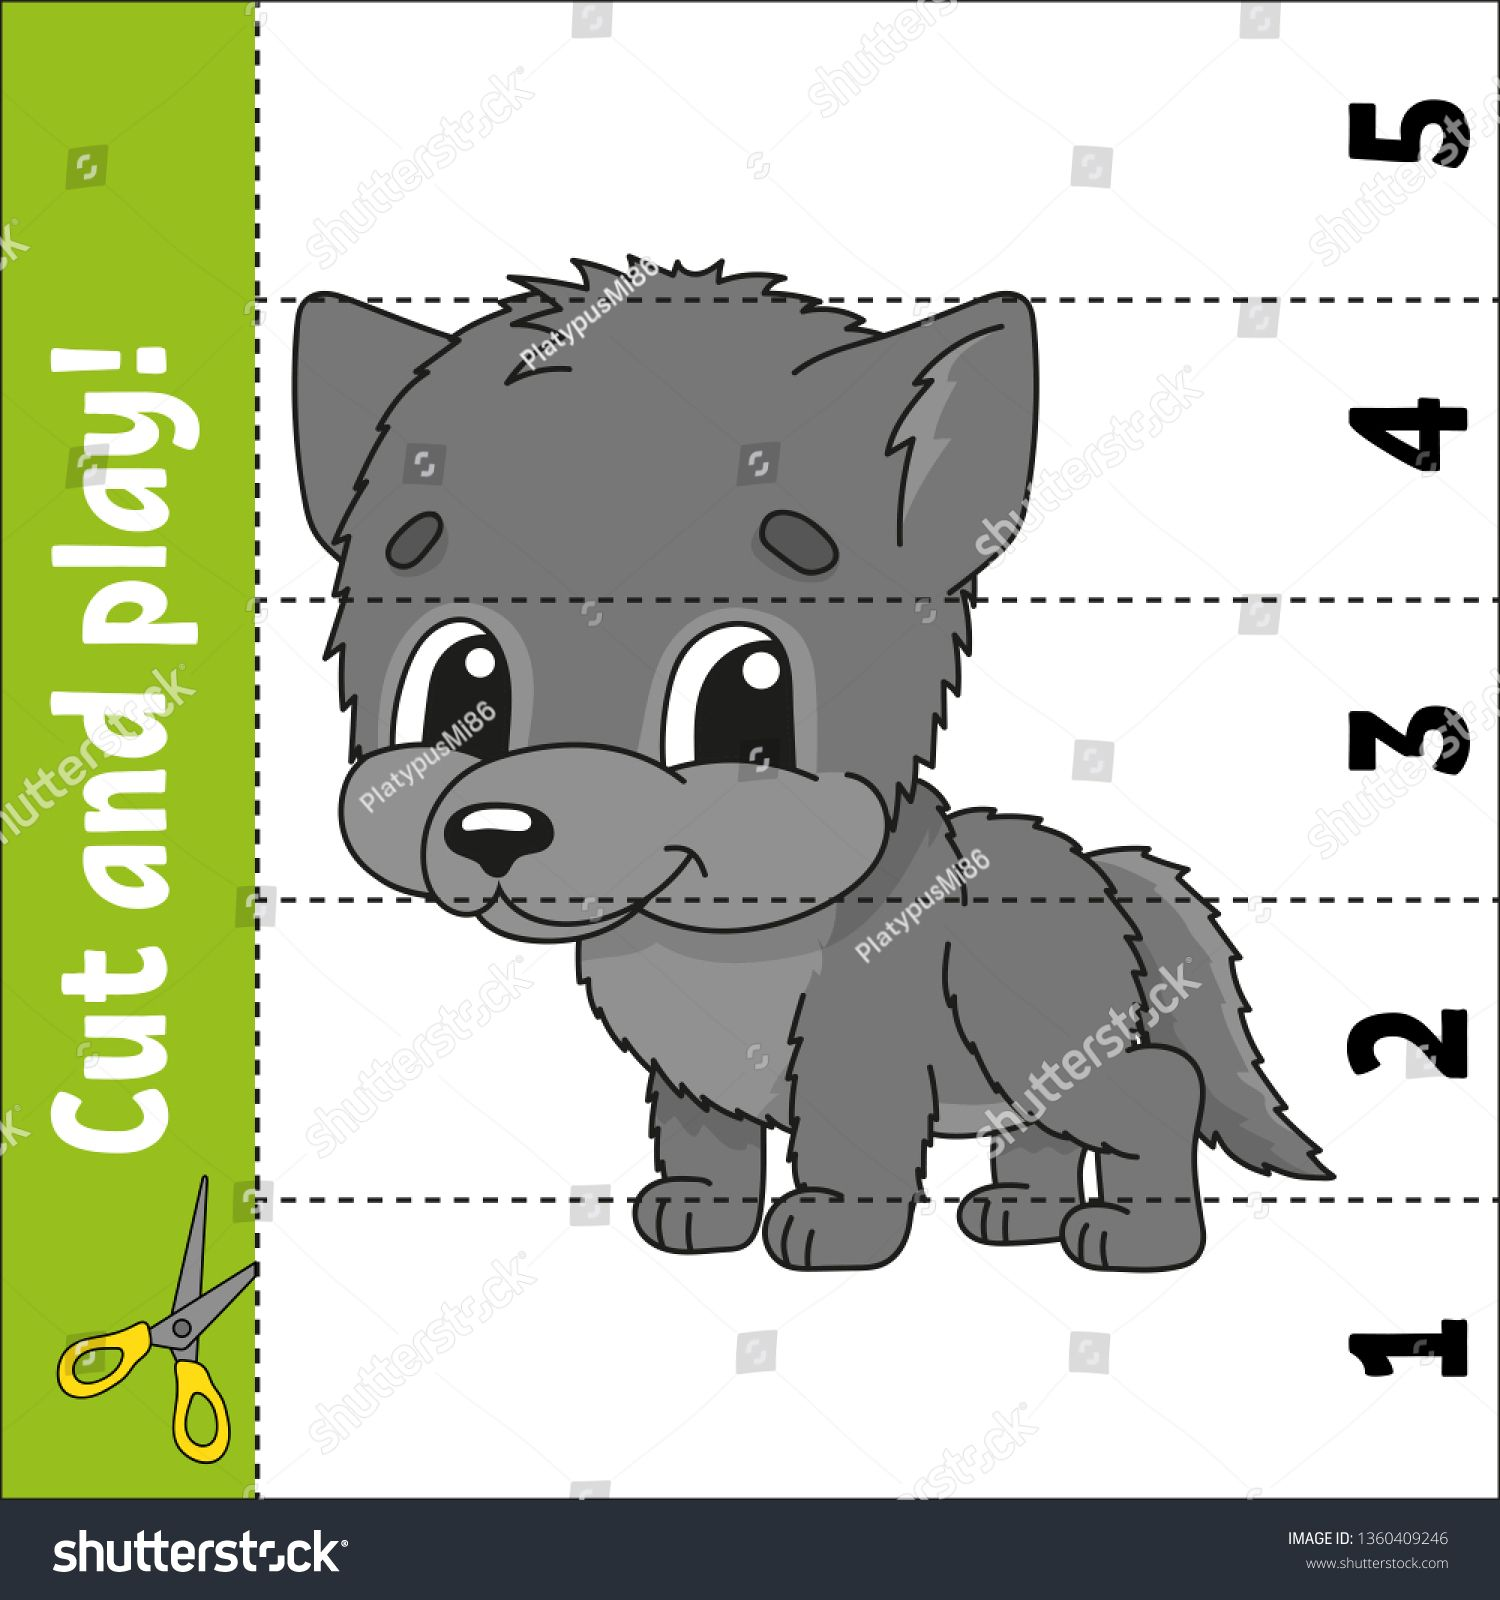 Learning Numbers Education Developing Worksheet Game For